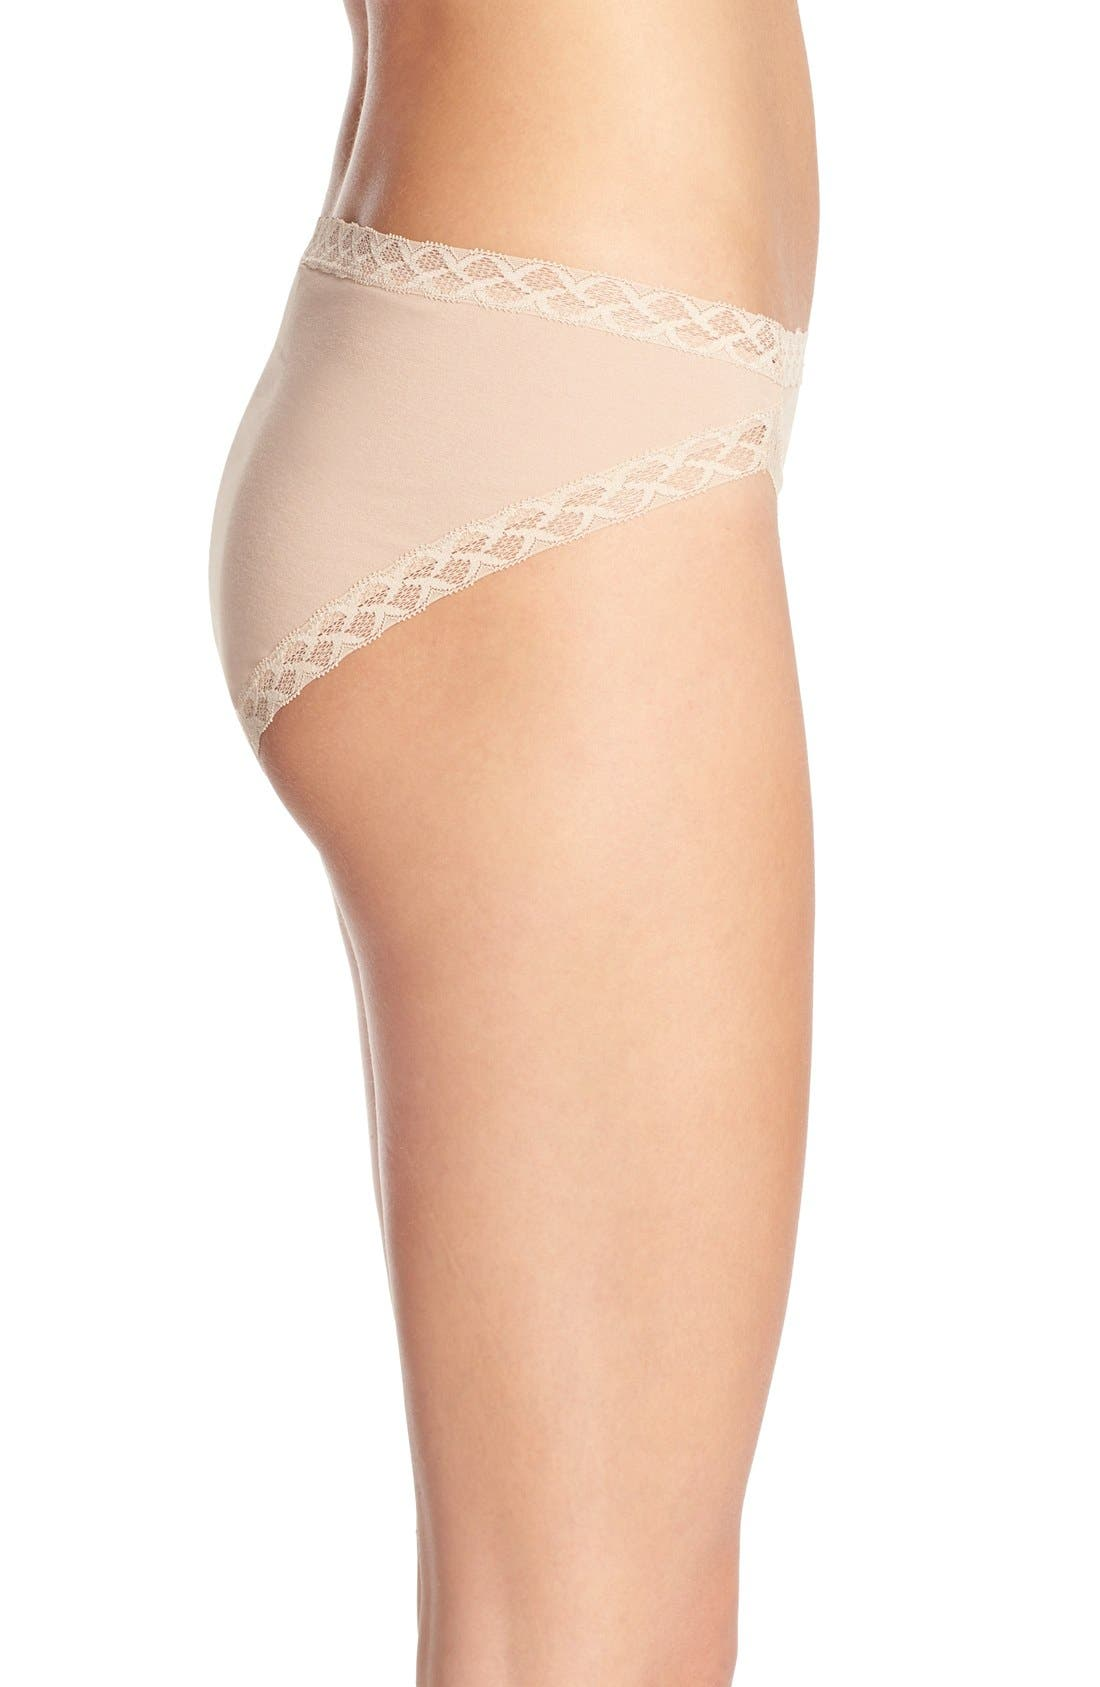 Bliss French Cut Briefs,                             Alternate thumbnail 3, color,                             Cafe